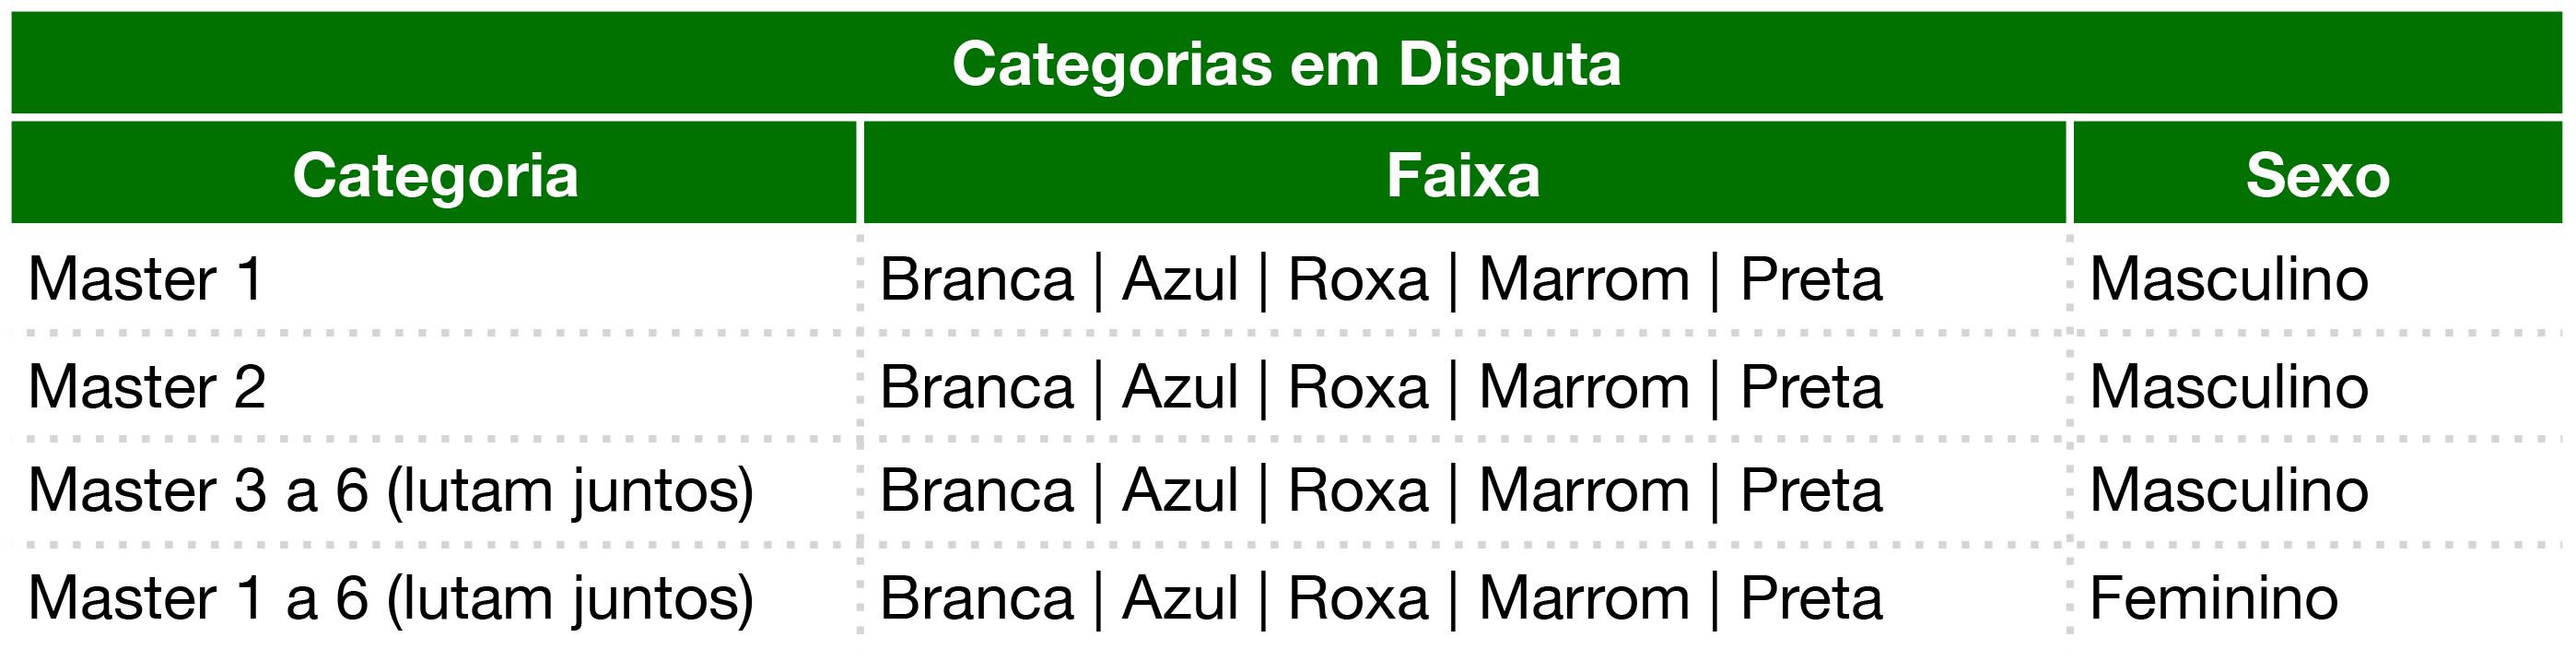 categoria-em-disputa